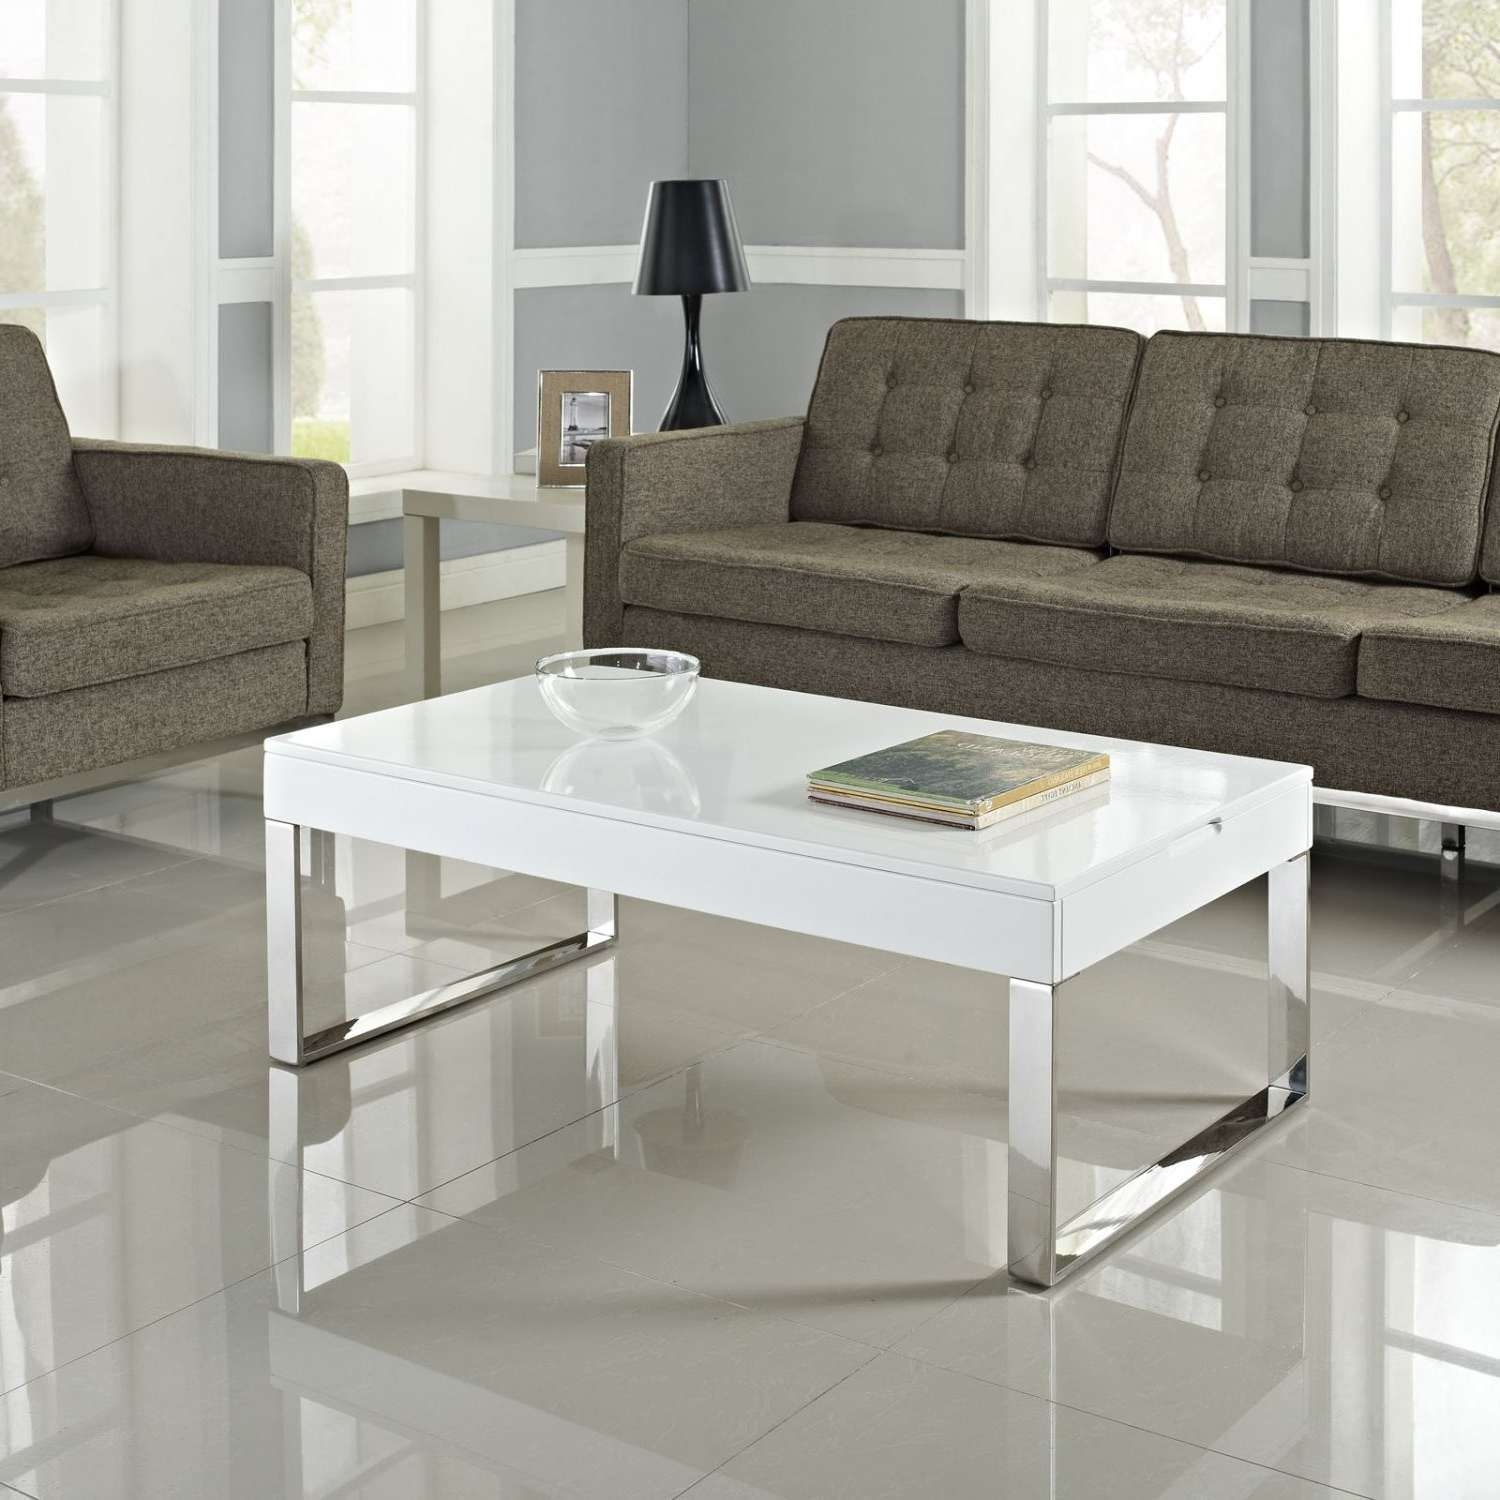 Most Recent Coffee Tables White High Gloss Within White Gloss Lift Coffee Table – All Furniture Usa (View 10 of 20)